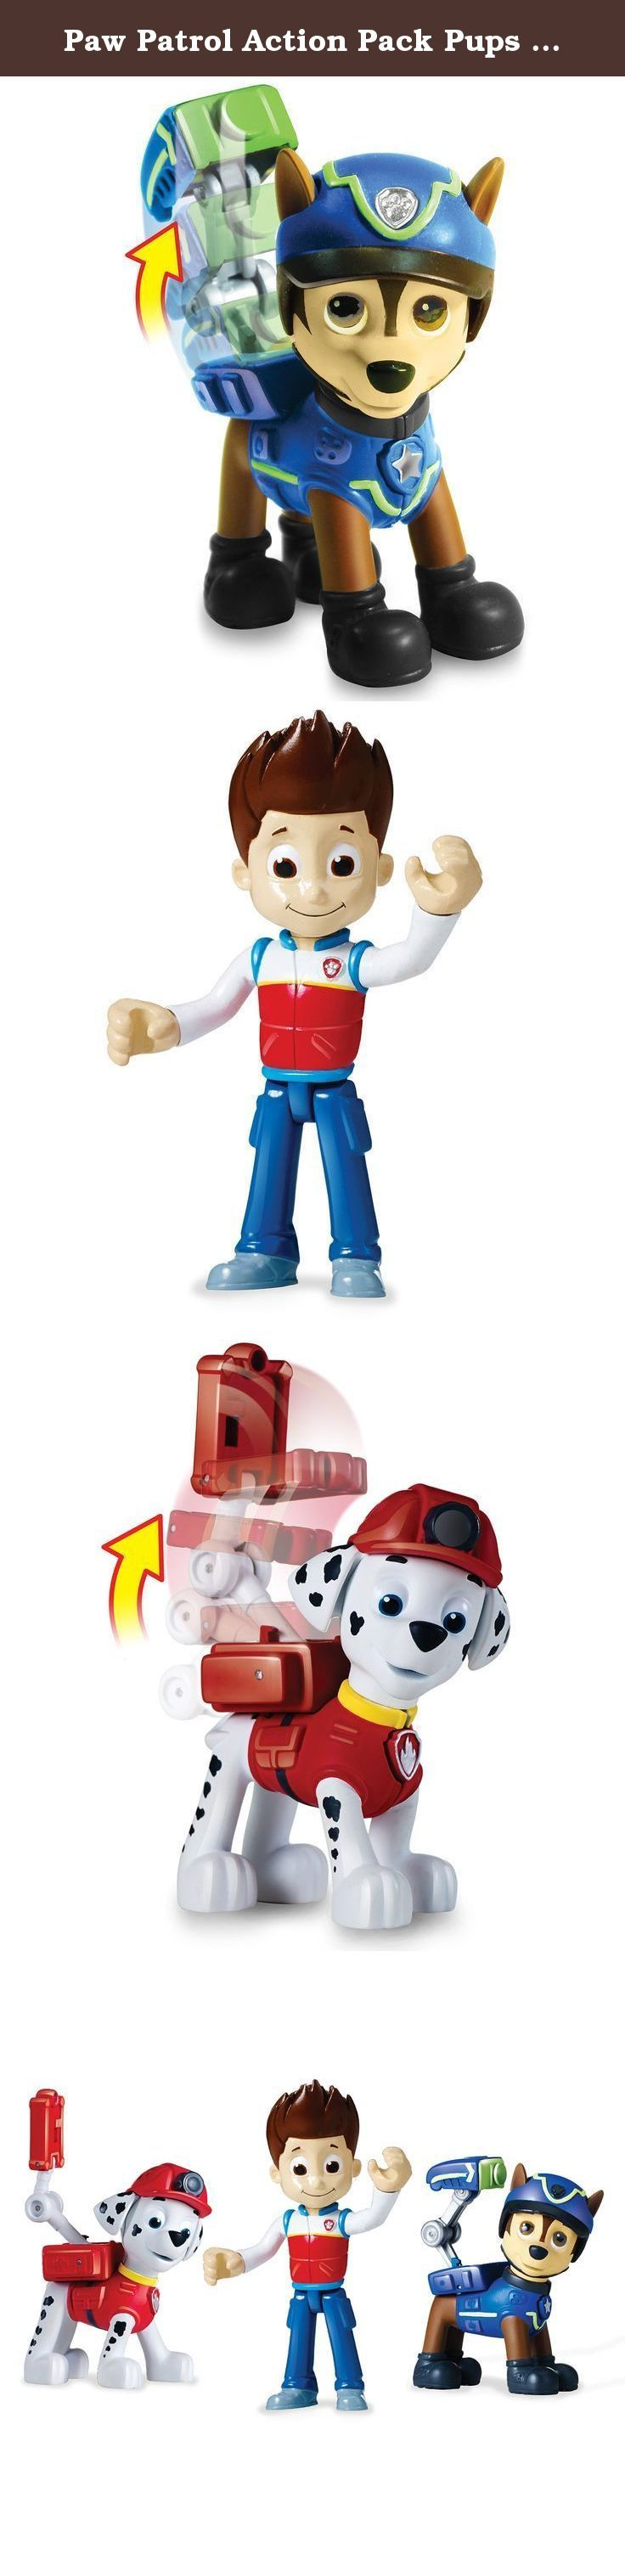 Paw Patrol Action Pack Pups 3pk Figure Set Marshall, Ryder, Chase. No job is too big and no pup is too small! Now you can reenact rescue scenes with 2 Action Pack Pups and Ryder! All of your favorite Paw Patrol characters are ready to save the day as you press their badges to unleash incredible transformations. Race to the ruff-ruff rescue with Rescue Marshall, Spy Chase and Ryder! Whether it's Marshall's medical scanner or Chase's spy gear, each Action Pack pup is loaded with unique...